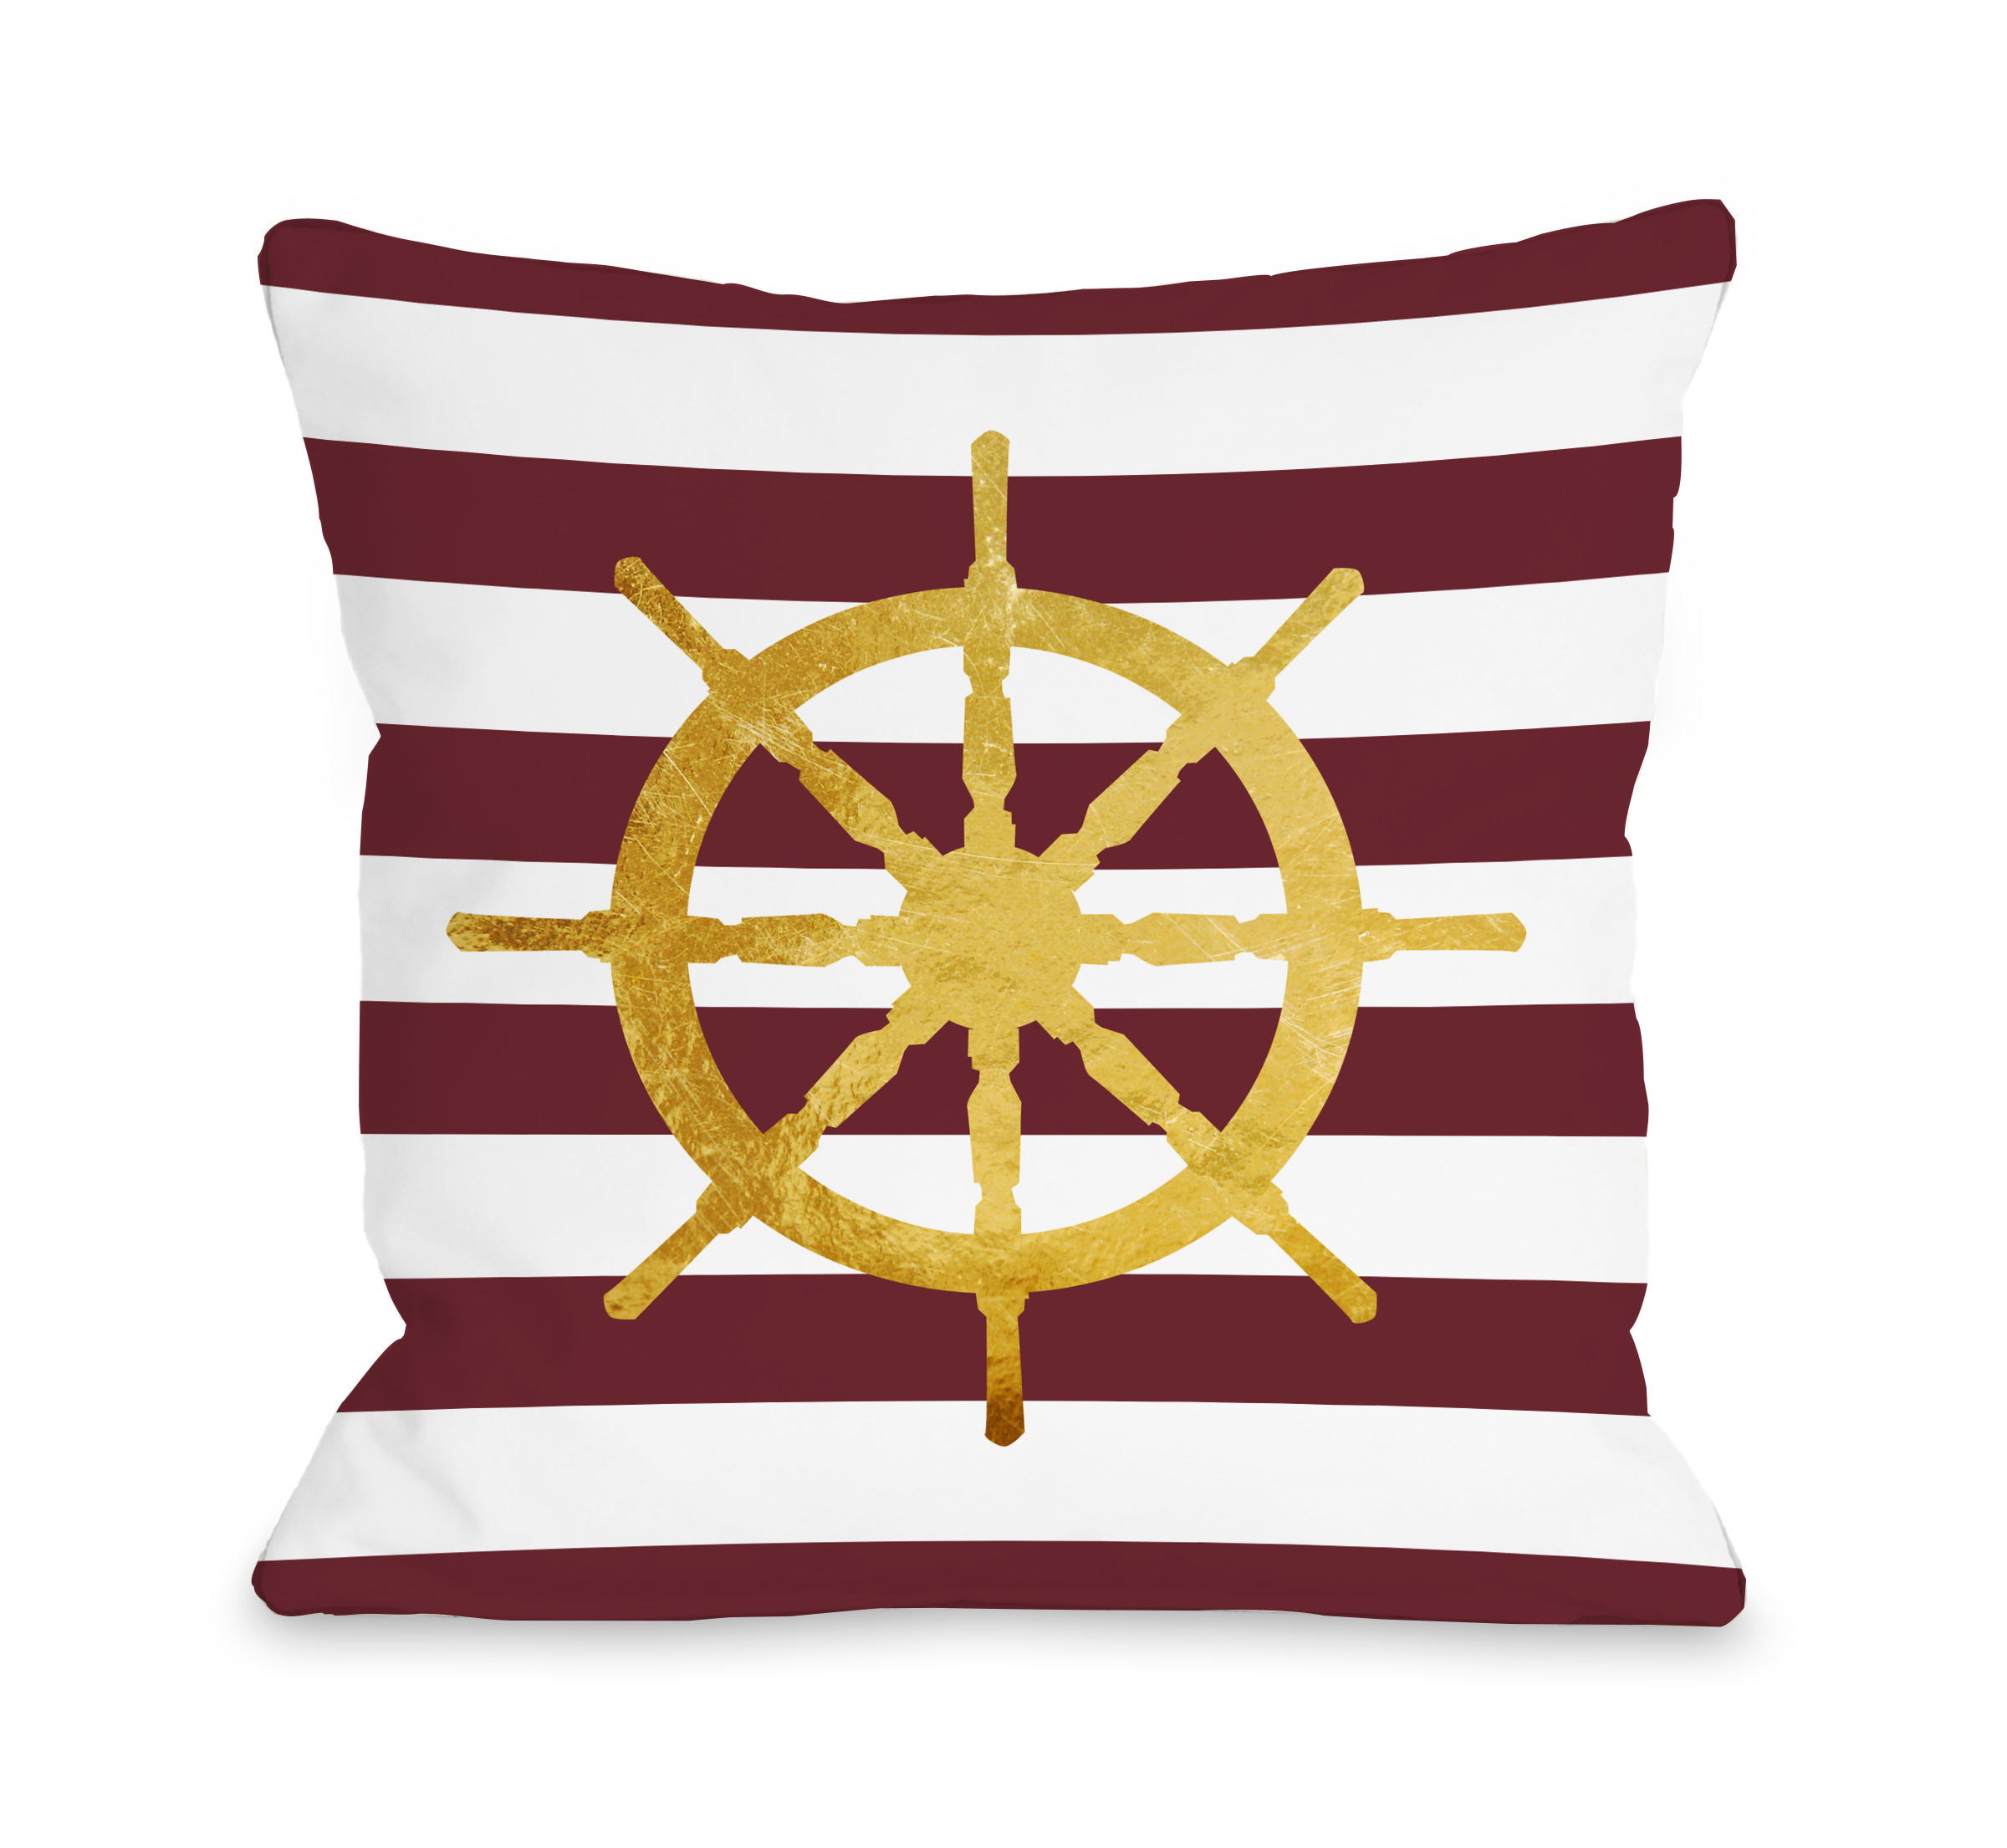 Nautical Stripes Wheel - Red 18x18 Pillow by OBC